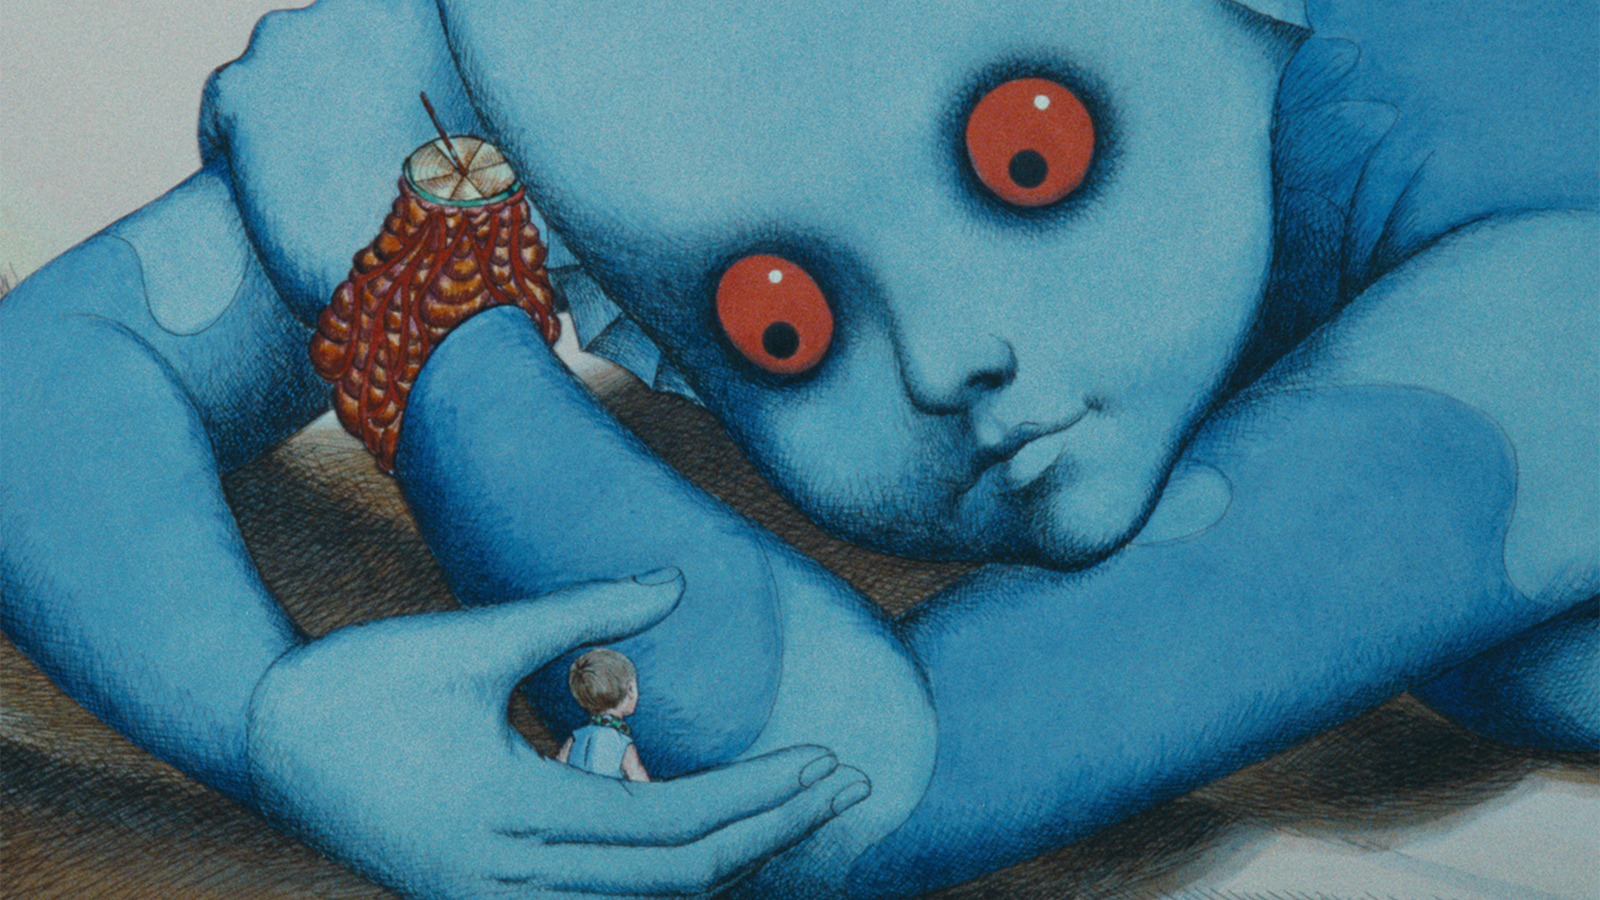 Fantastic Planet still stands as a unique vision of profound